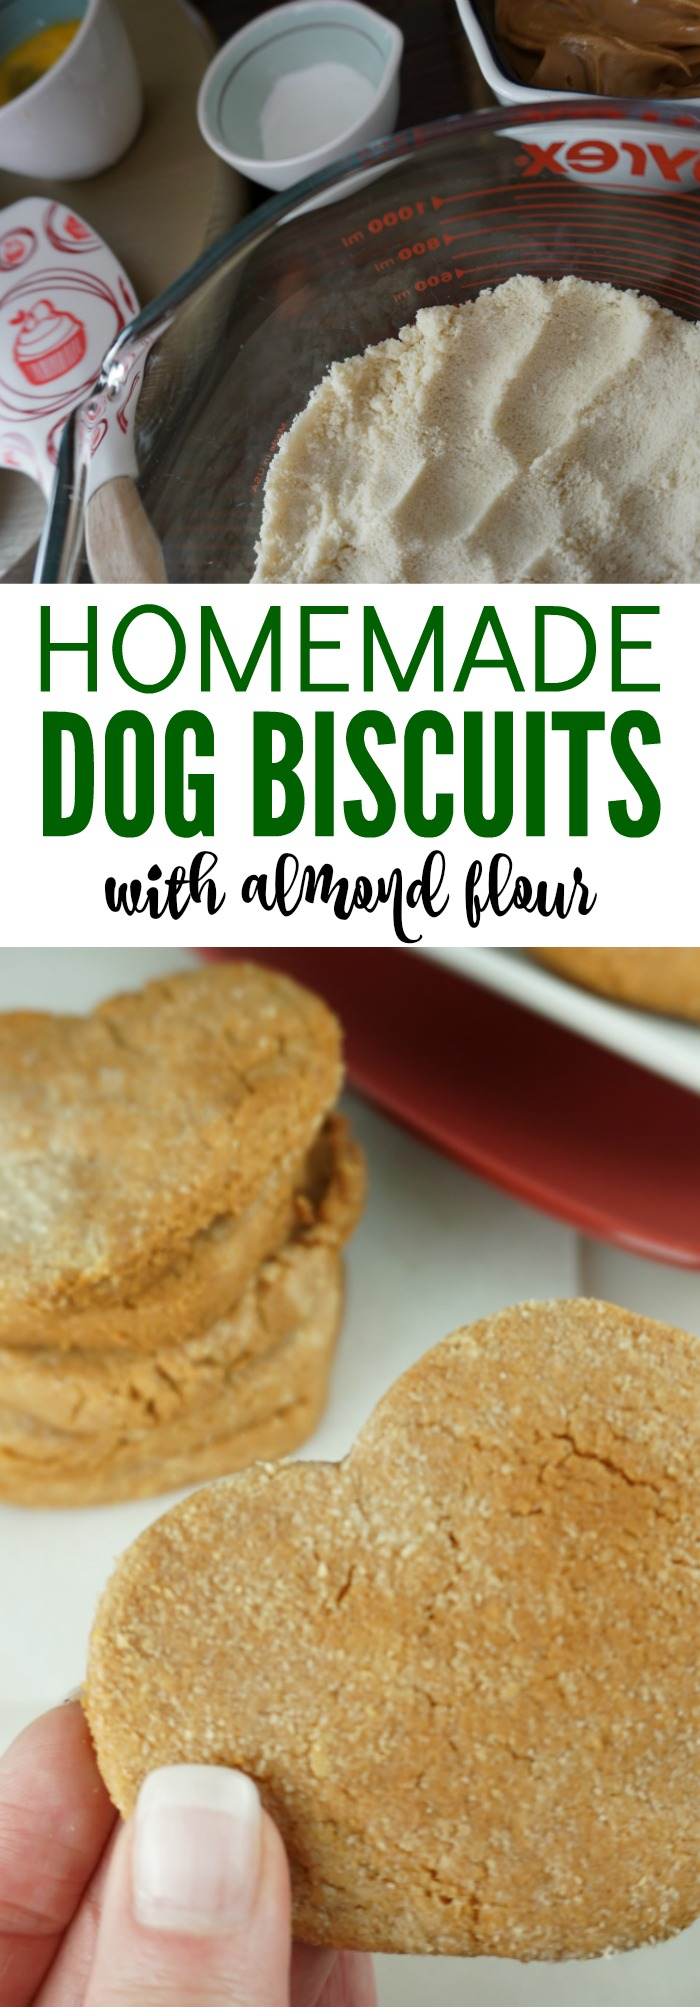 Homemade-Dog-Biscuits